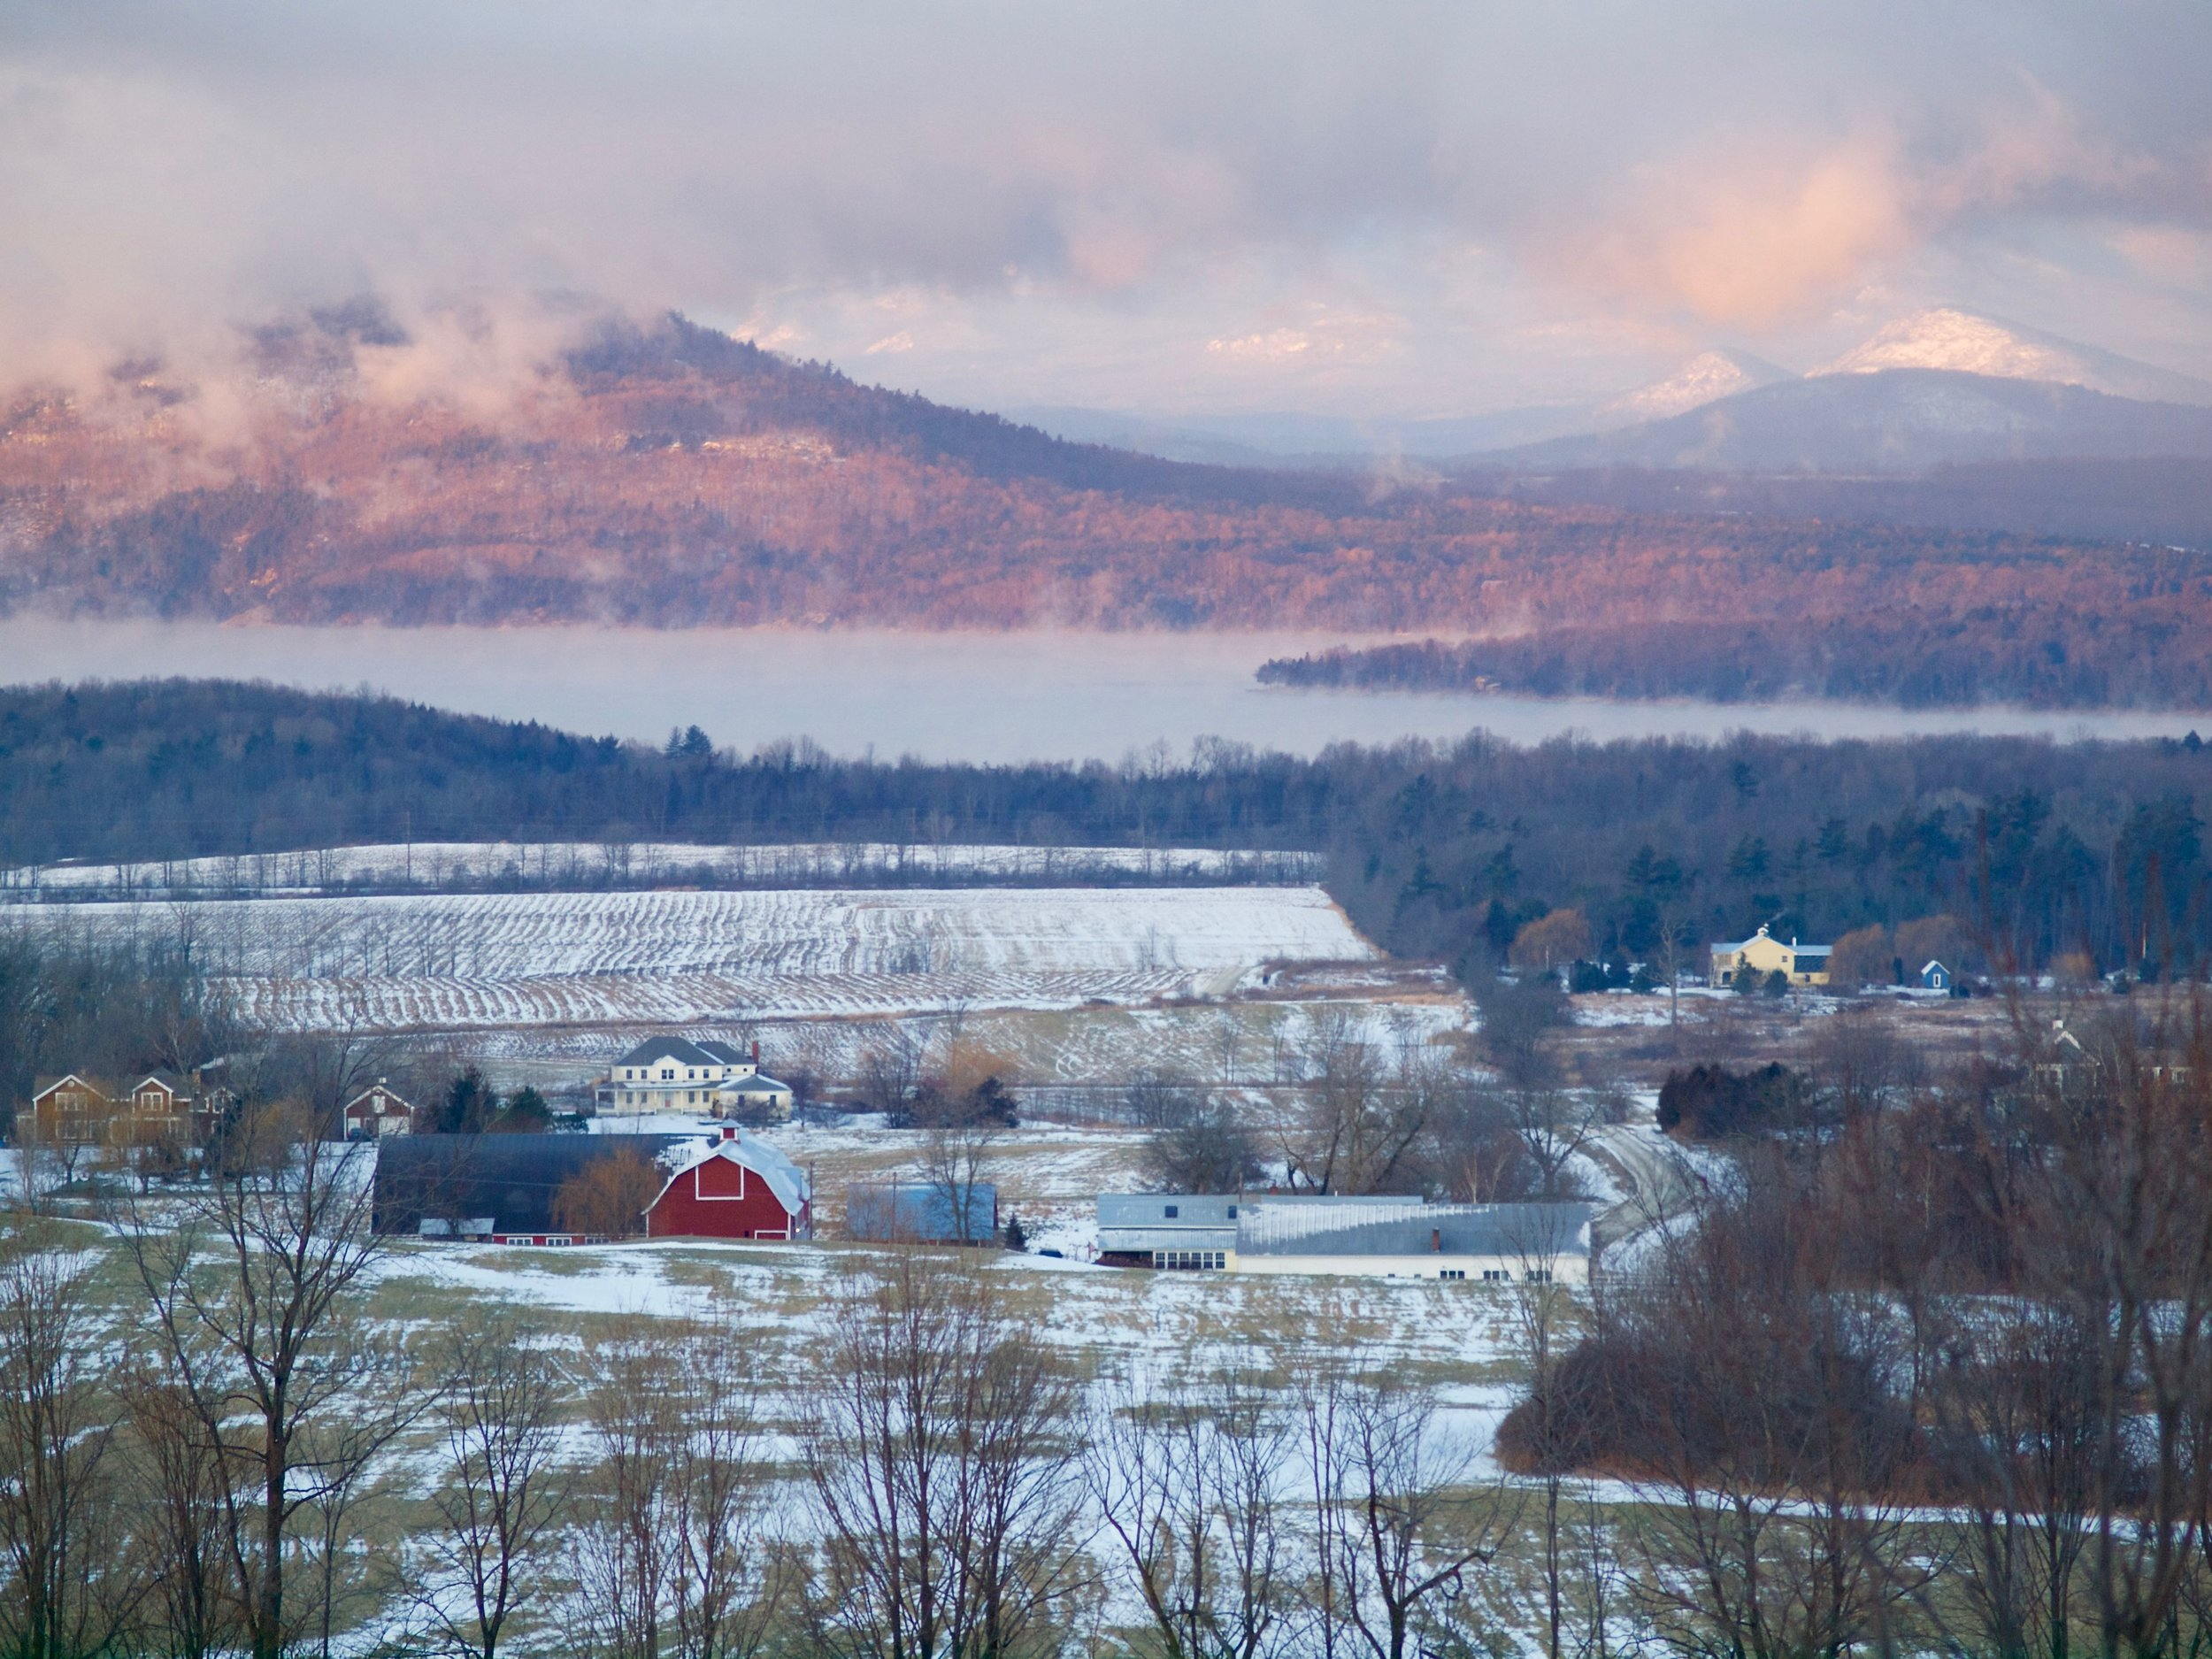 Winter view from the Mt. Philo Inn, adjacent to the recreational options of Mt. Philo